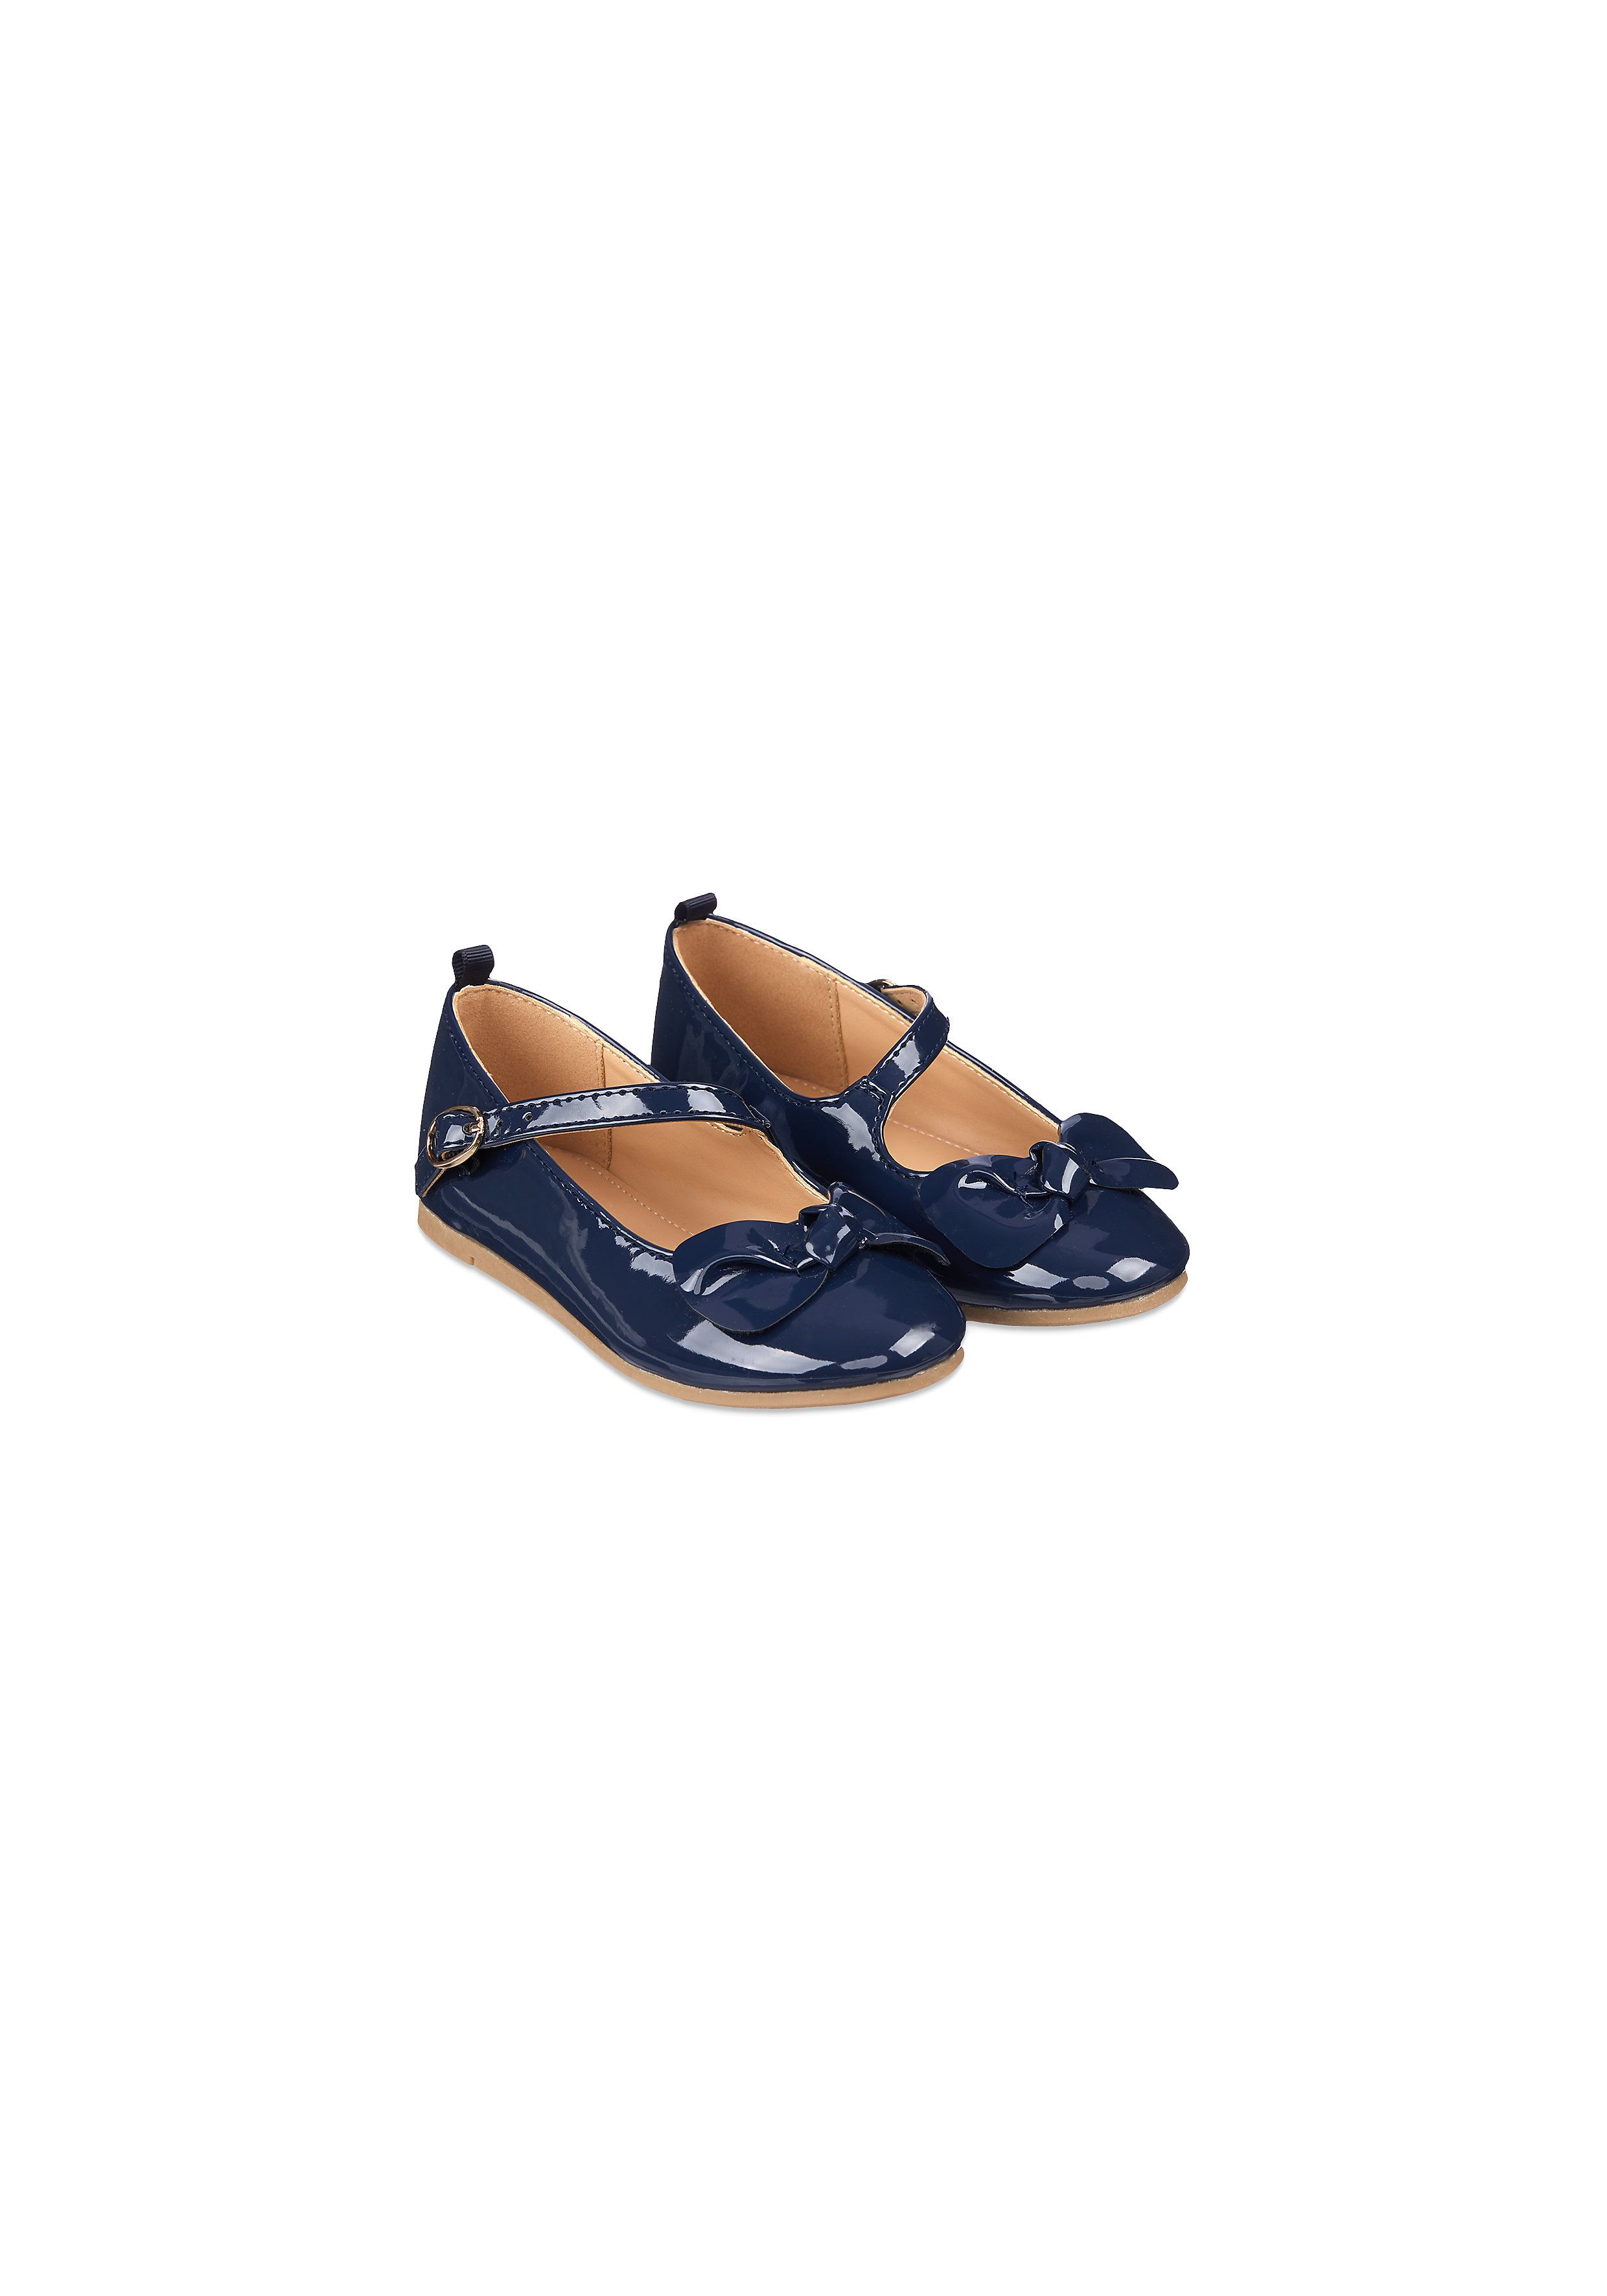 Mothercare | Girls Navy Patent Ballerina Shoes - Navy